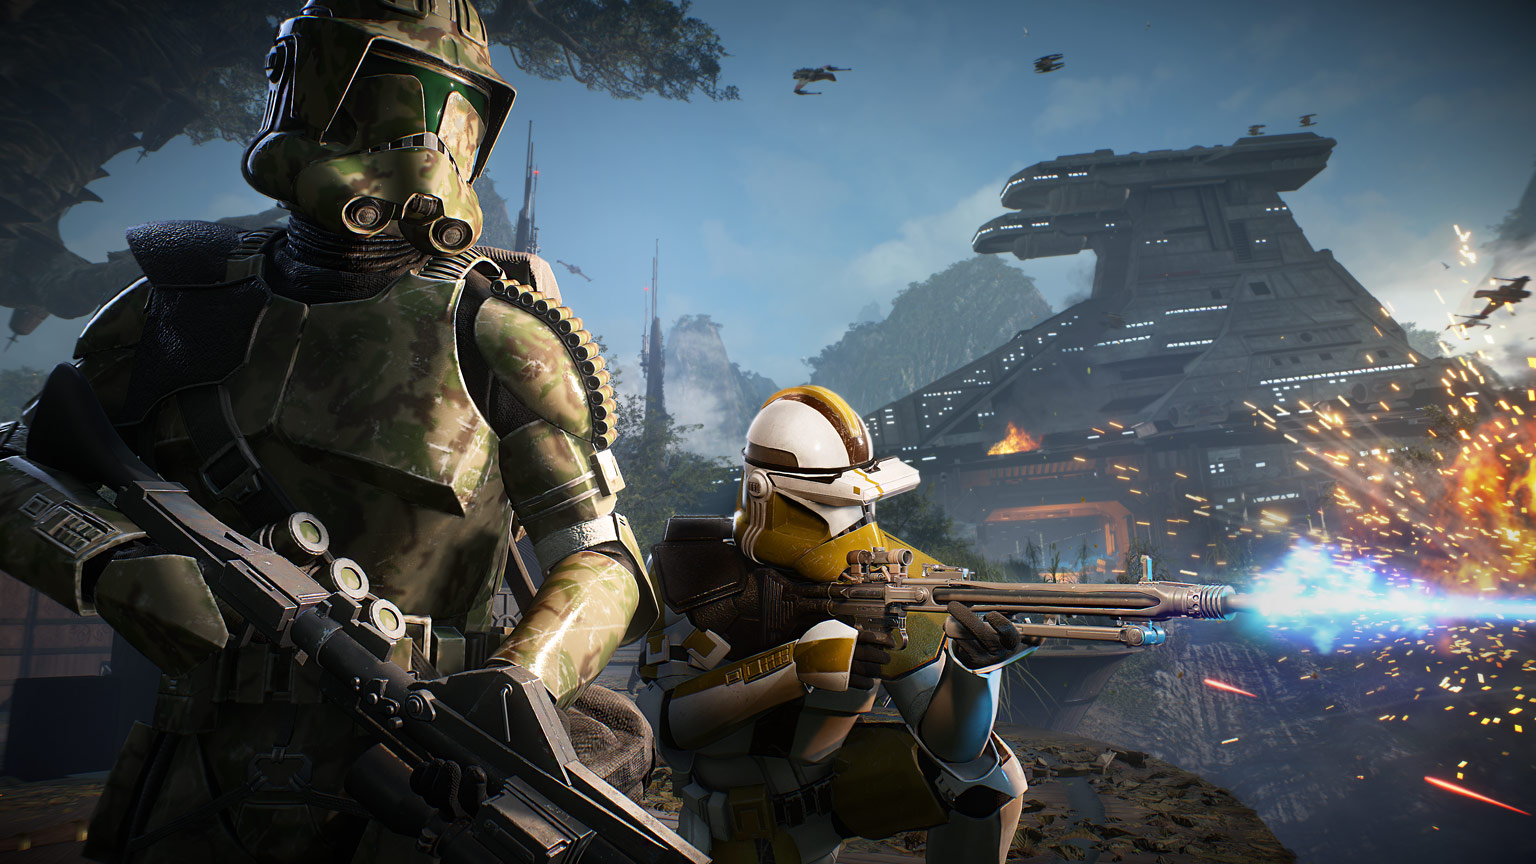 New Clone Troopers Lead The Charge Of Star Wars Battlefront Ii